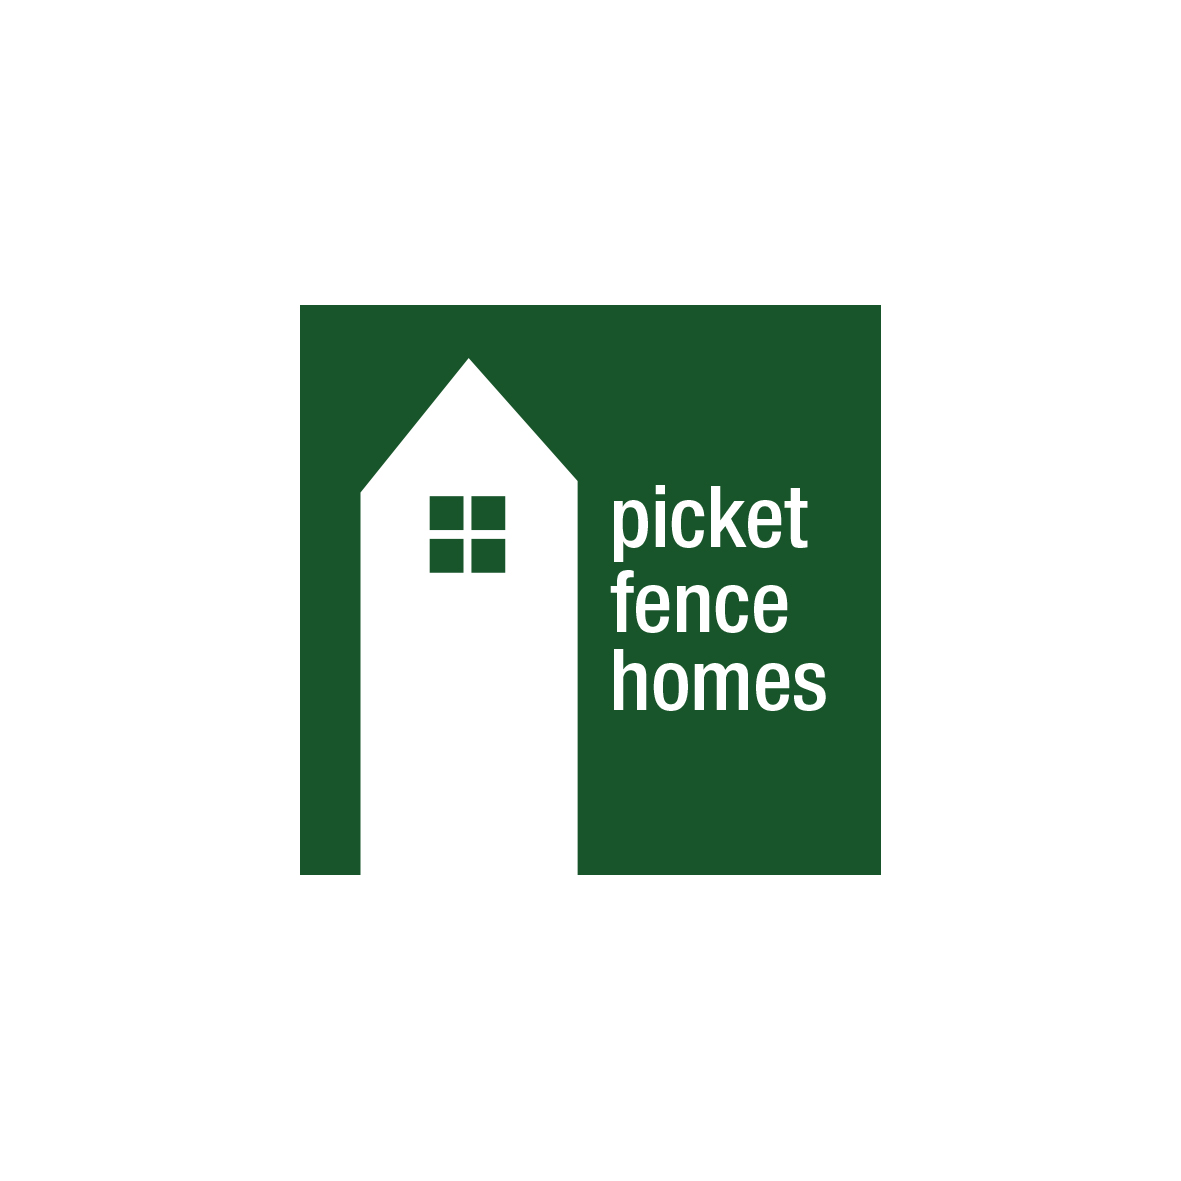 Logo Design by Private User - Entry No. 49 in the Logo Design Contest Picket Fence Homes Logo Design.